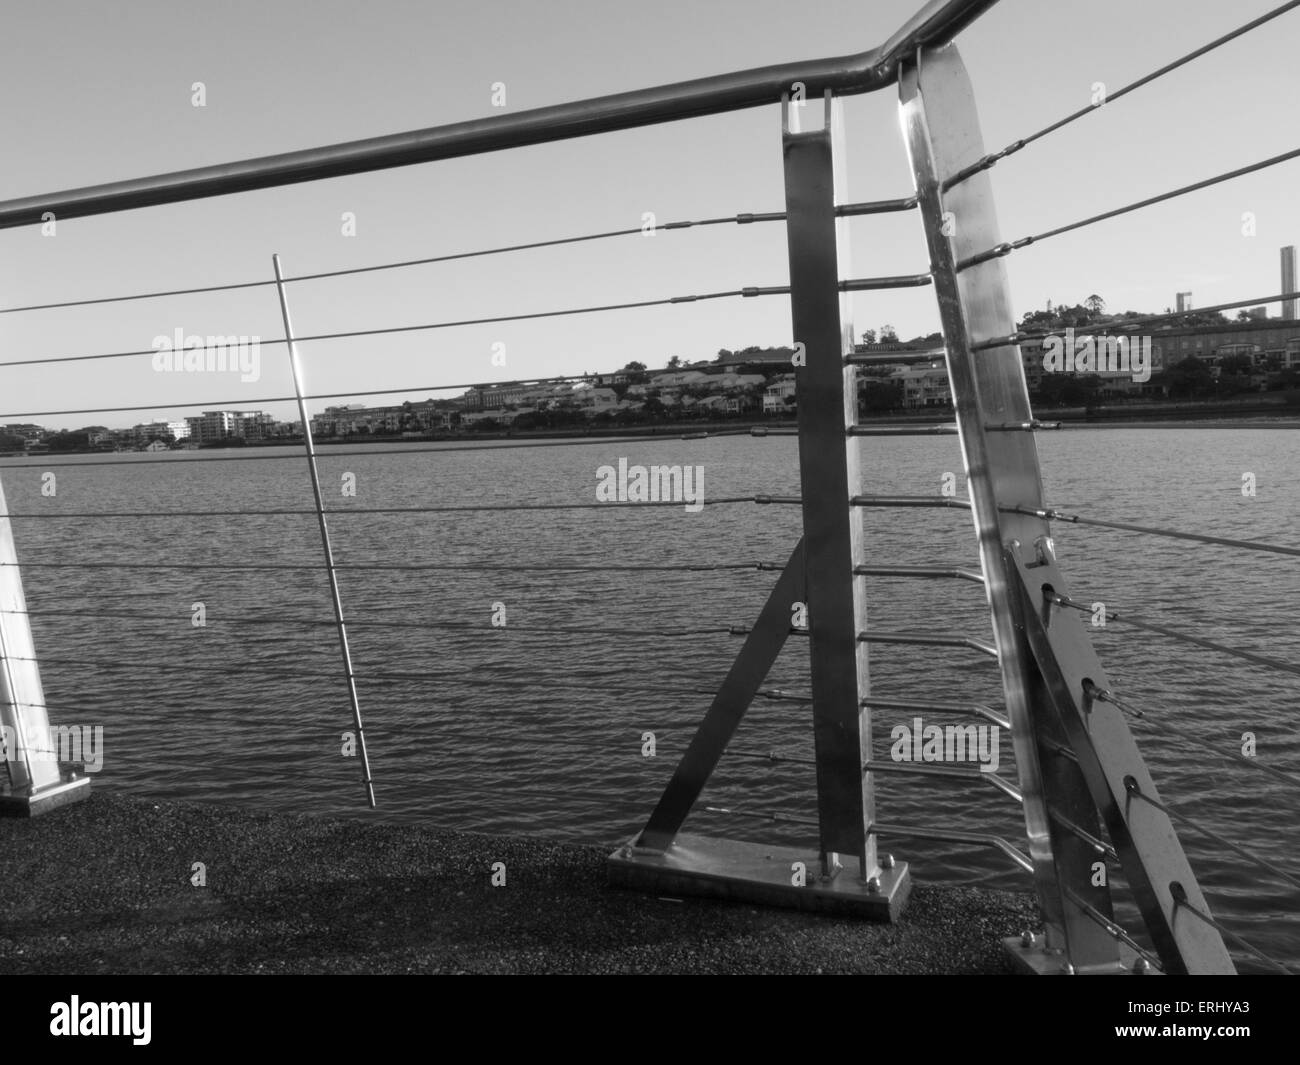 Brisbane River, Bulimba Riverside Park Jetty, Love Street Bulimba, Queensland, Australia, Pacific - Stock Image